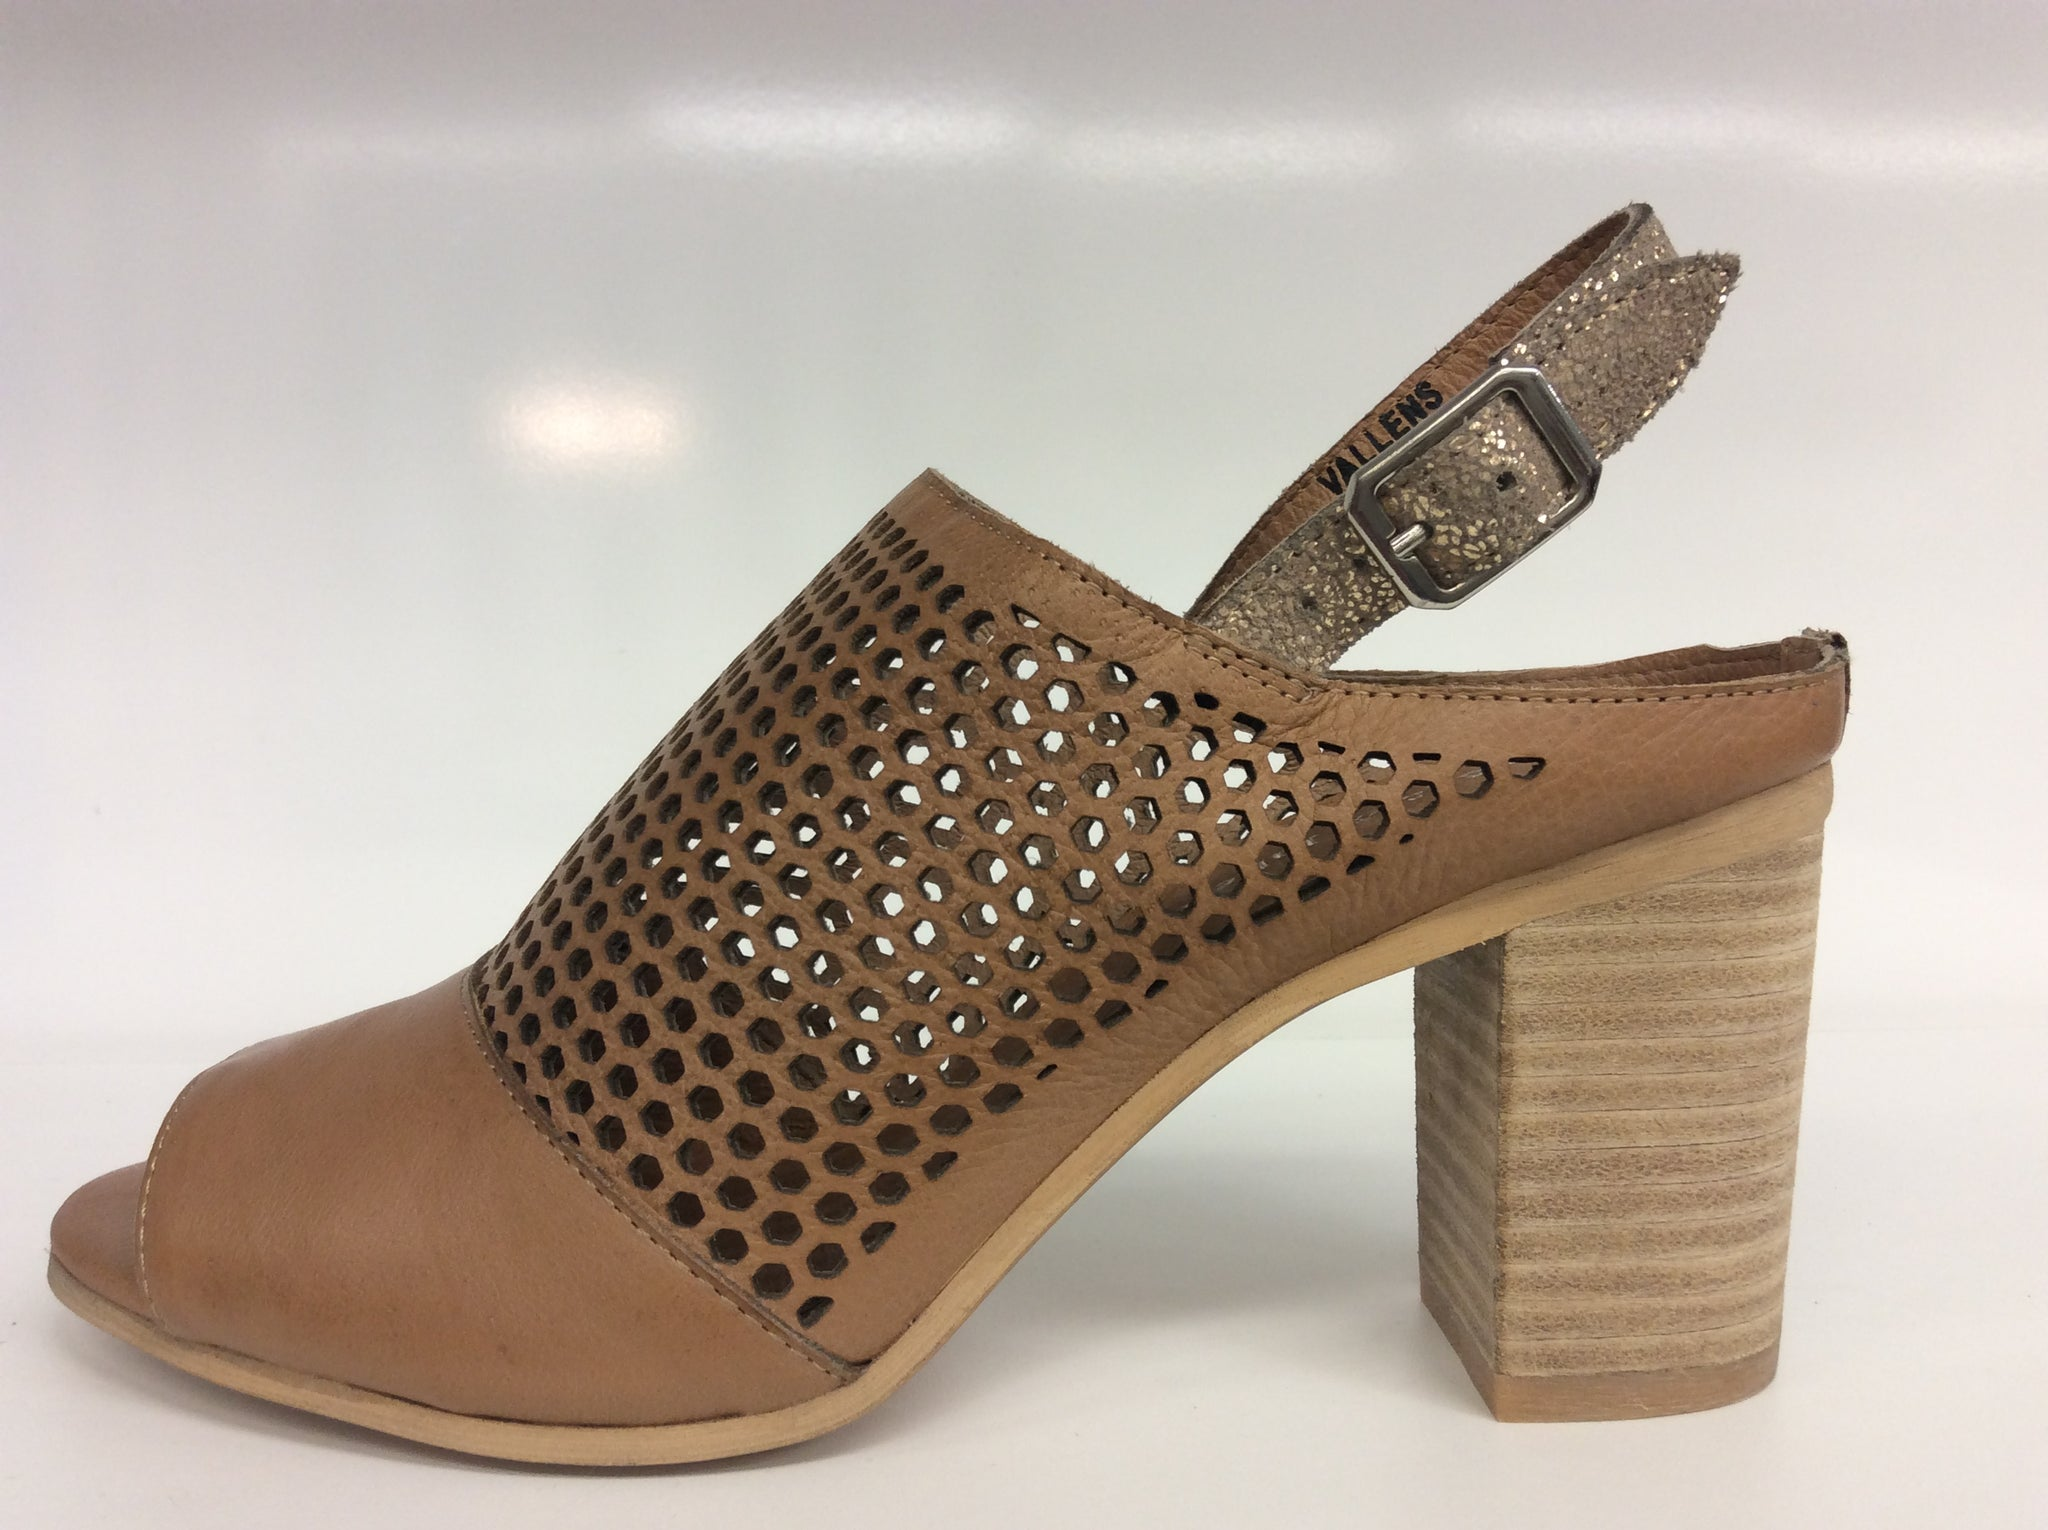 Django & Juliette - Vallens - Dark Tan-Peach Crackle Leather - Sole Sister Shoes